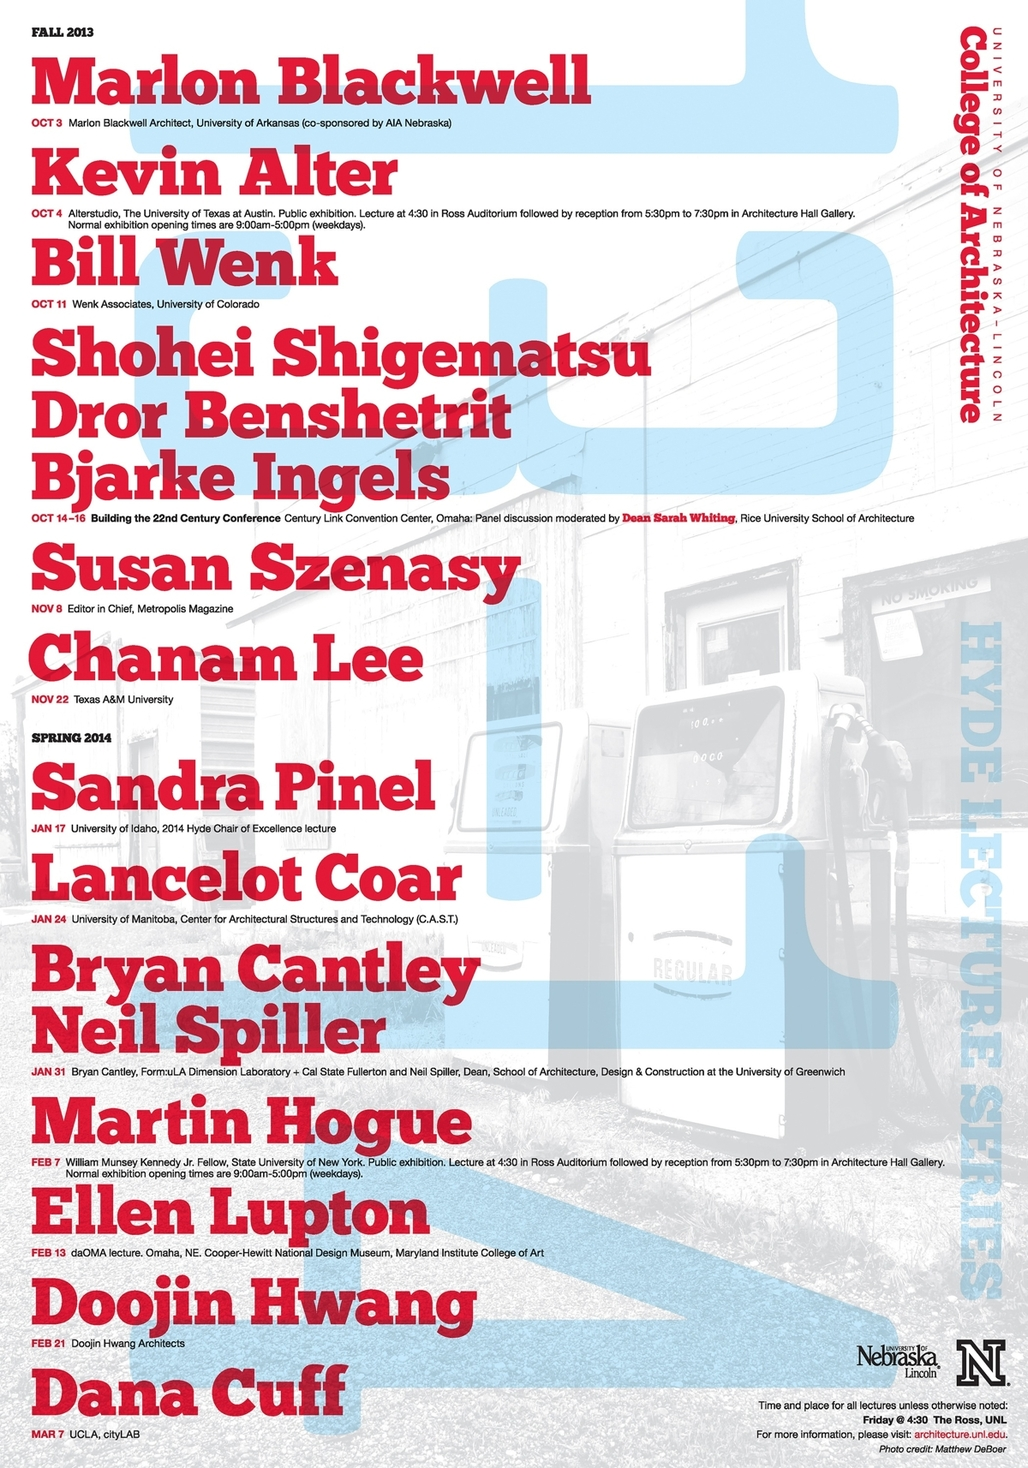 Poster for the Hyde Lecture Series from the University of Nebraska - Lincoln, College of Architecture. Poster photo credit: Matthew DeBoer. Image courtesy of UNL College of Architecture.